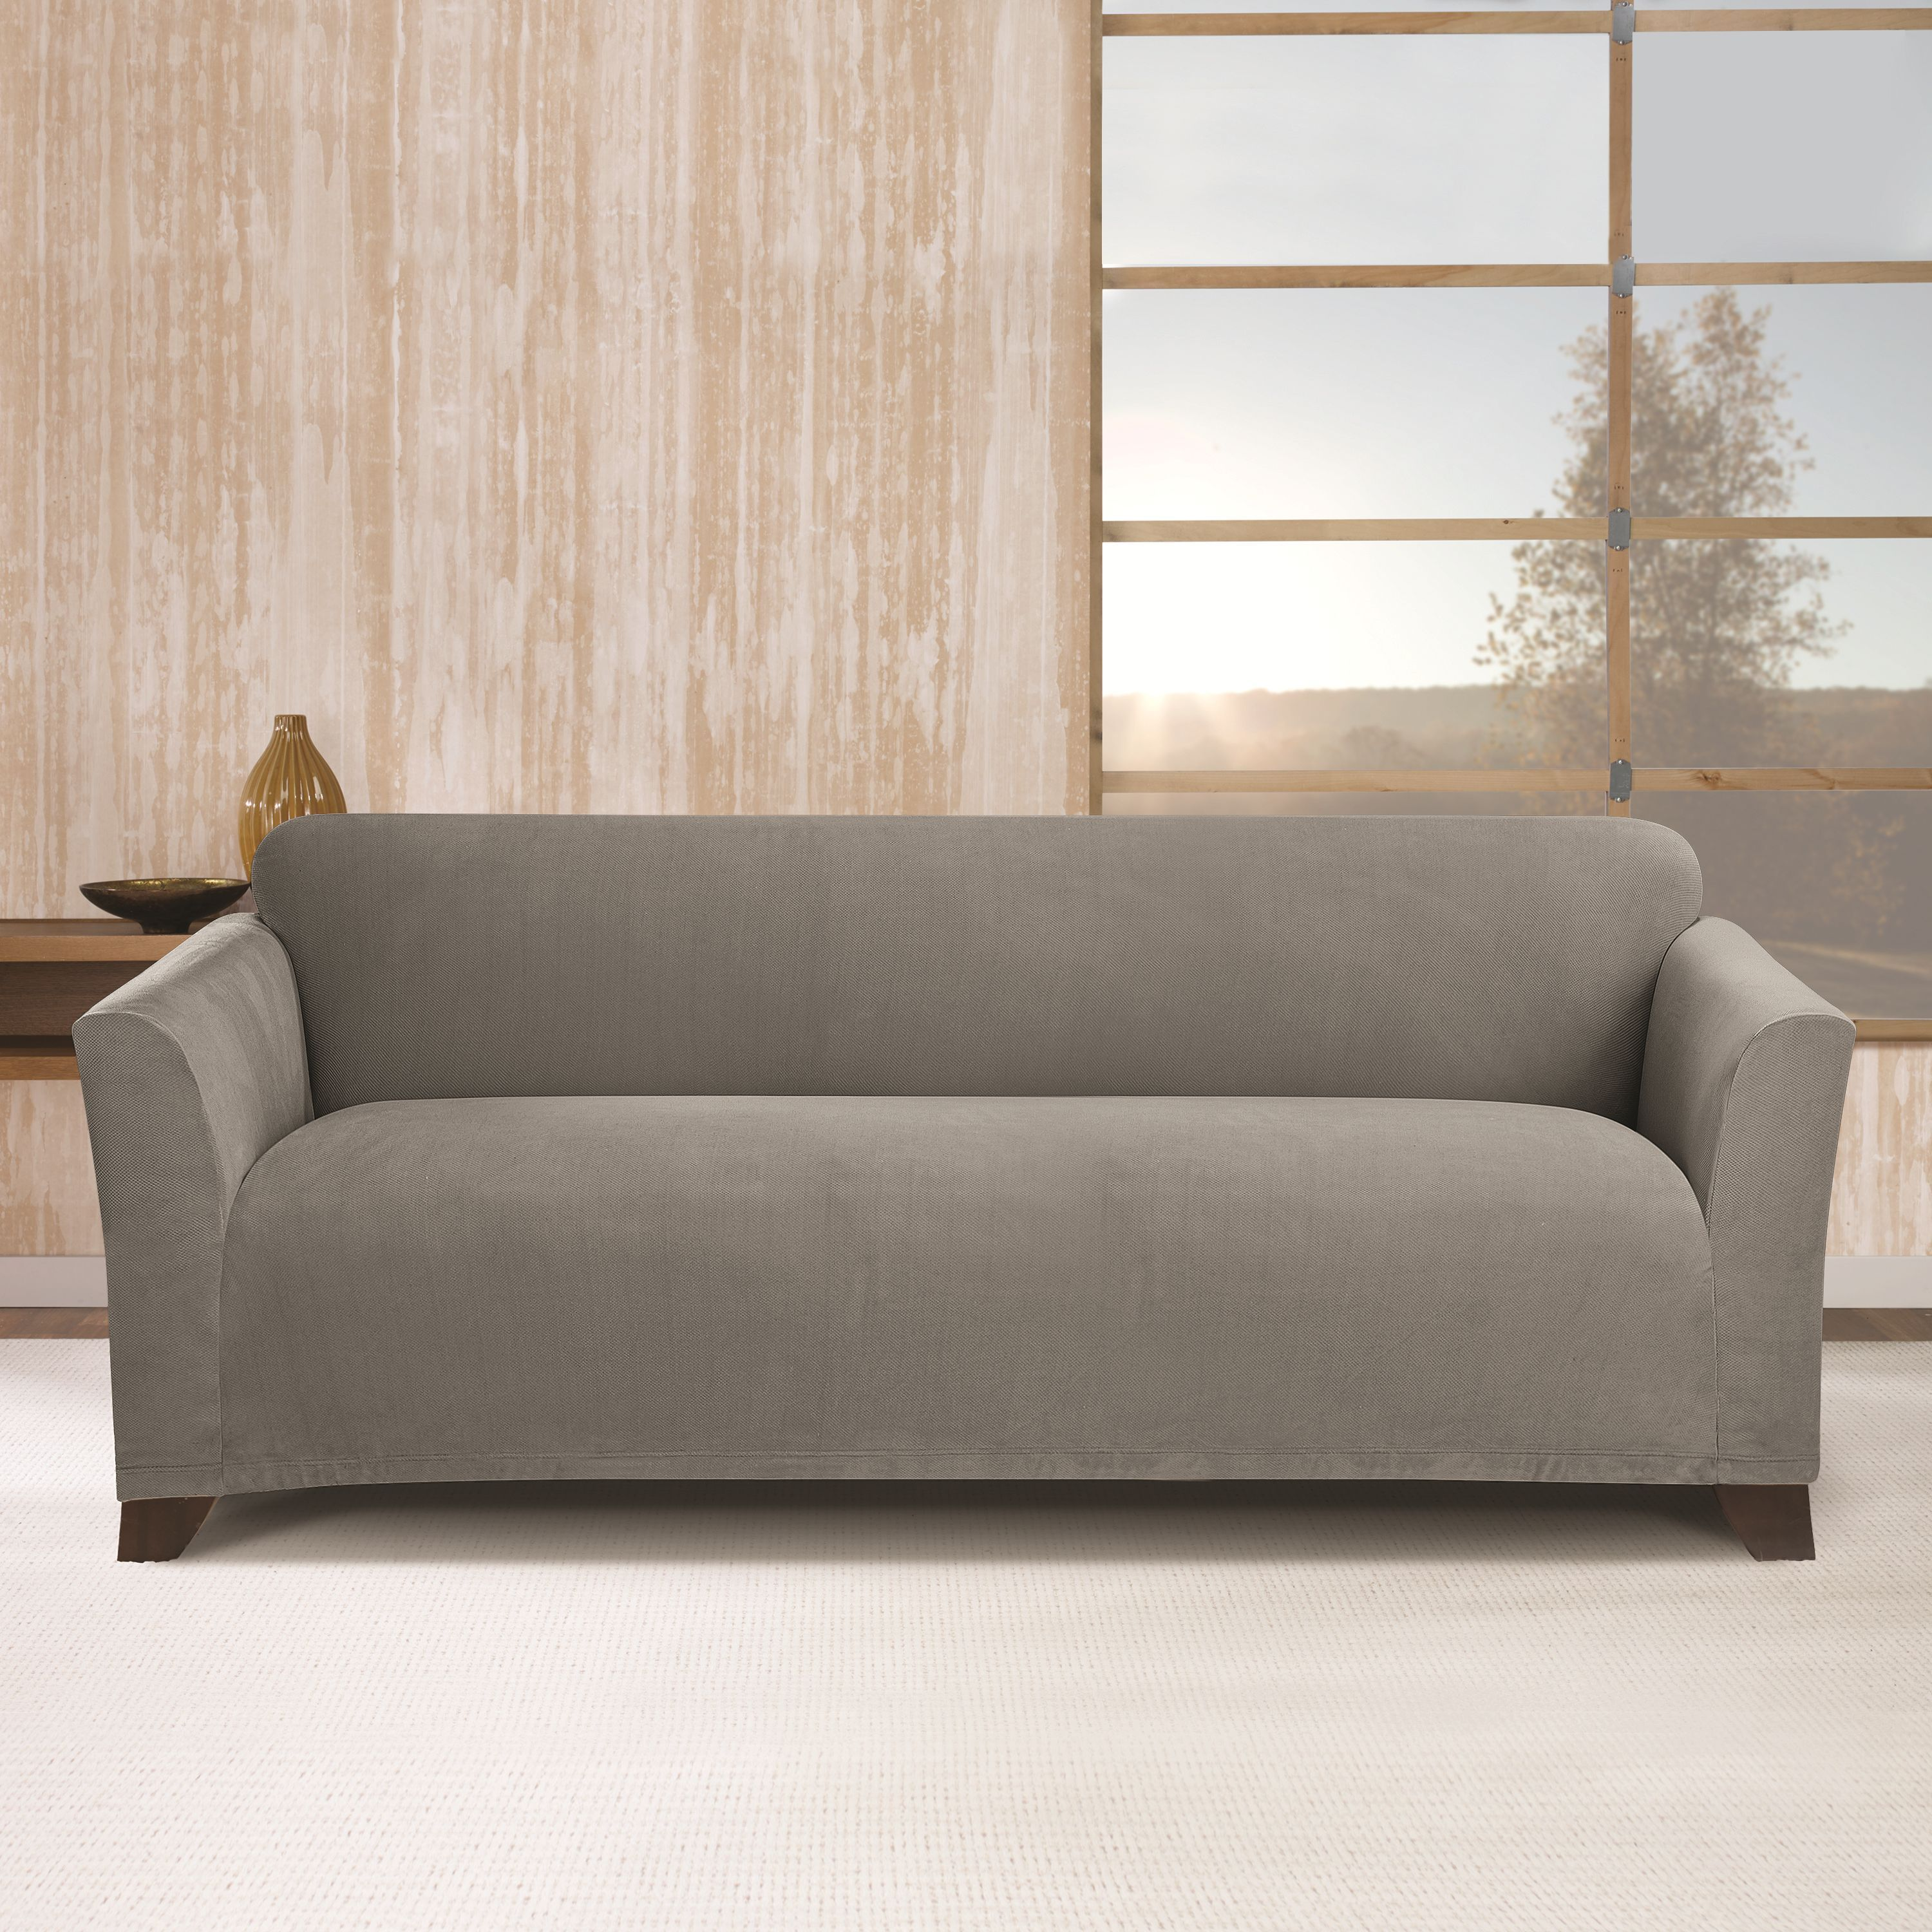 Couch Covers Online Australia